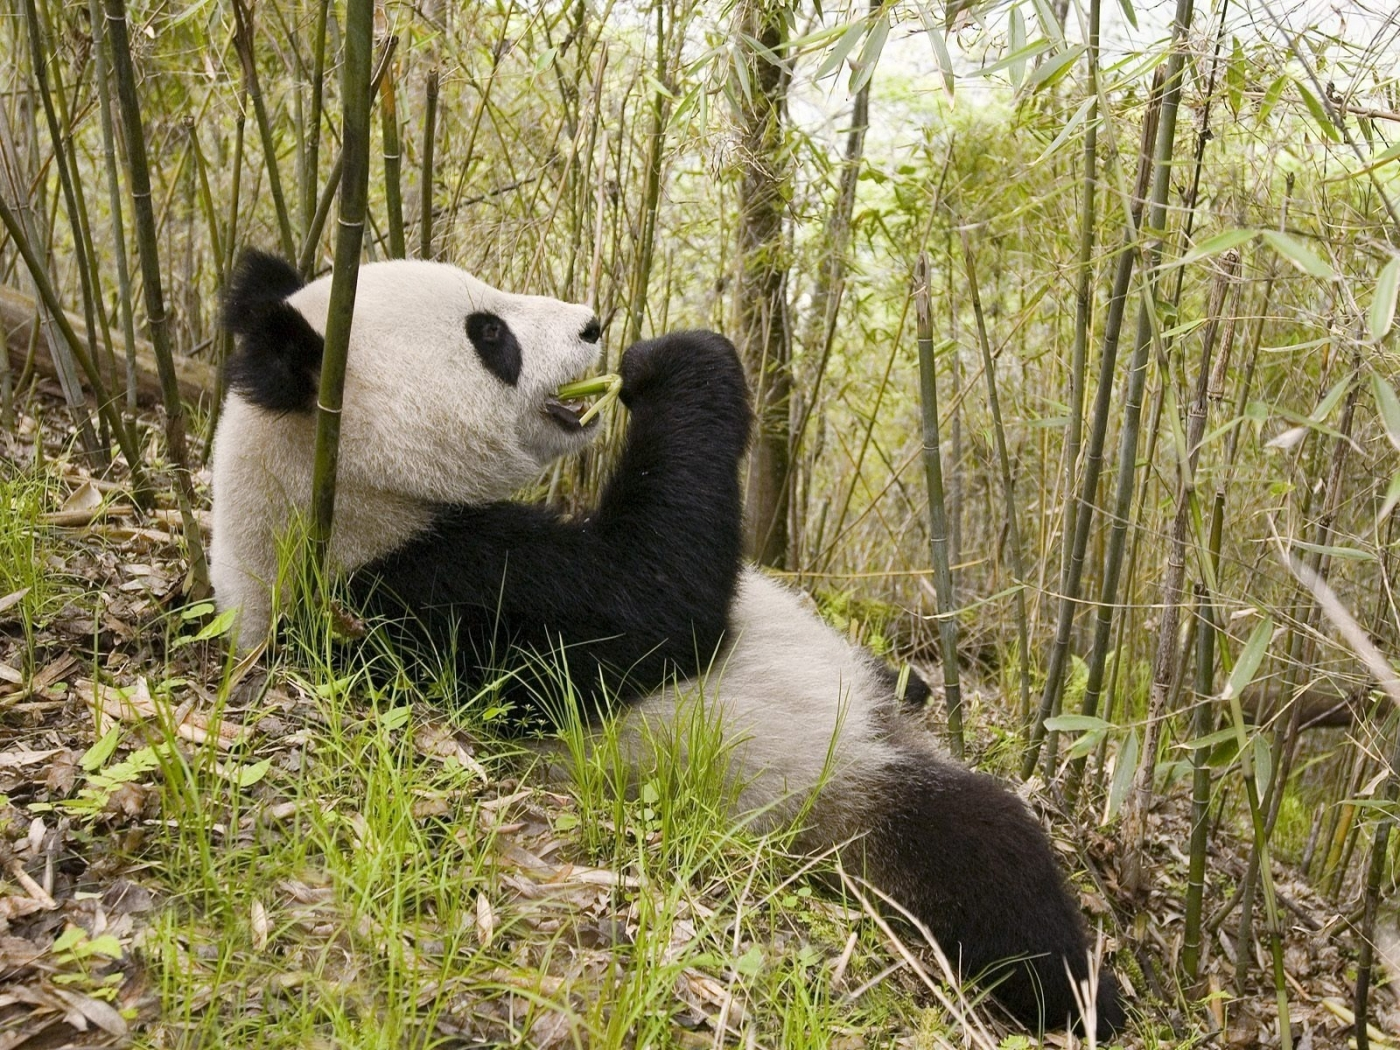 37335 download wallpaper Animals, Pandas screensavers and pictures for free